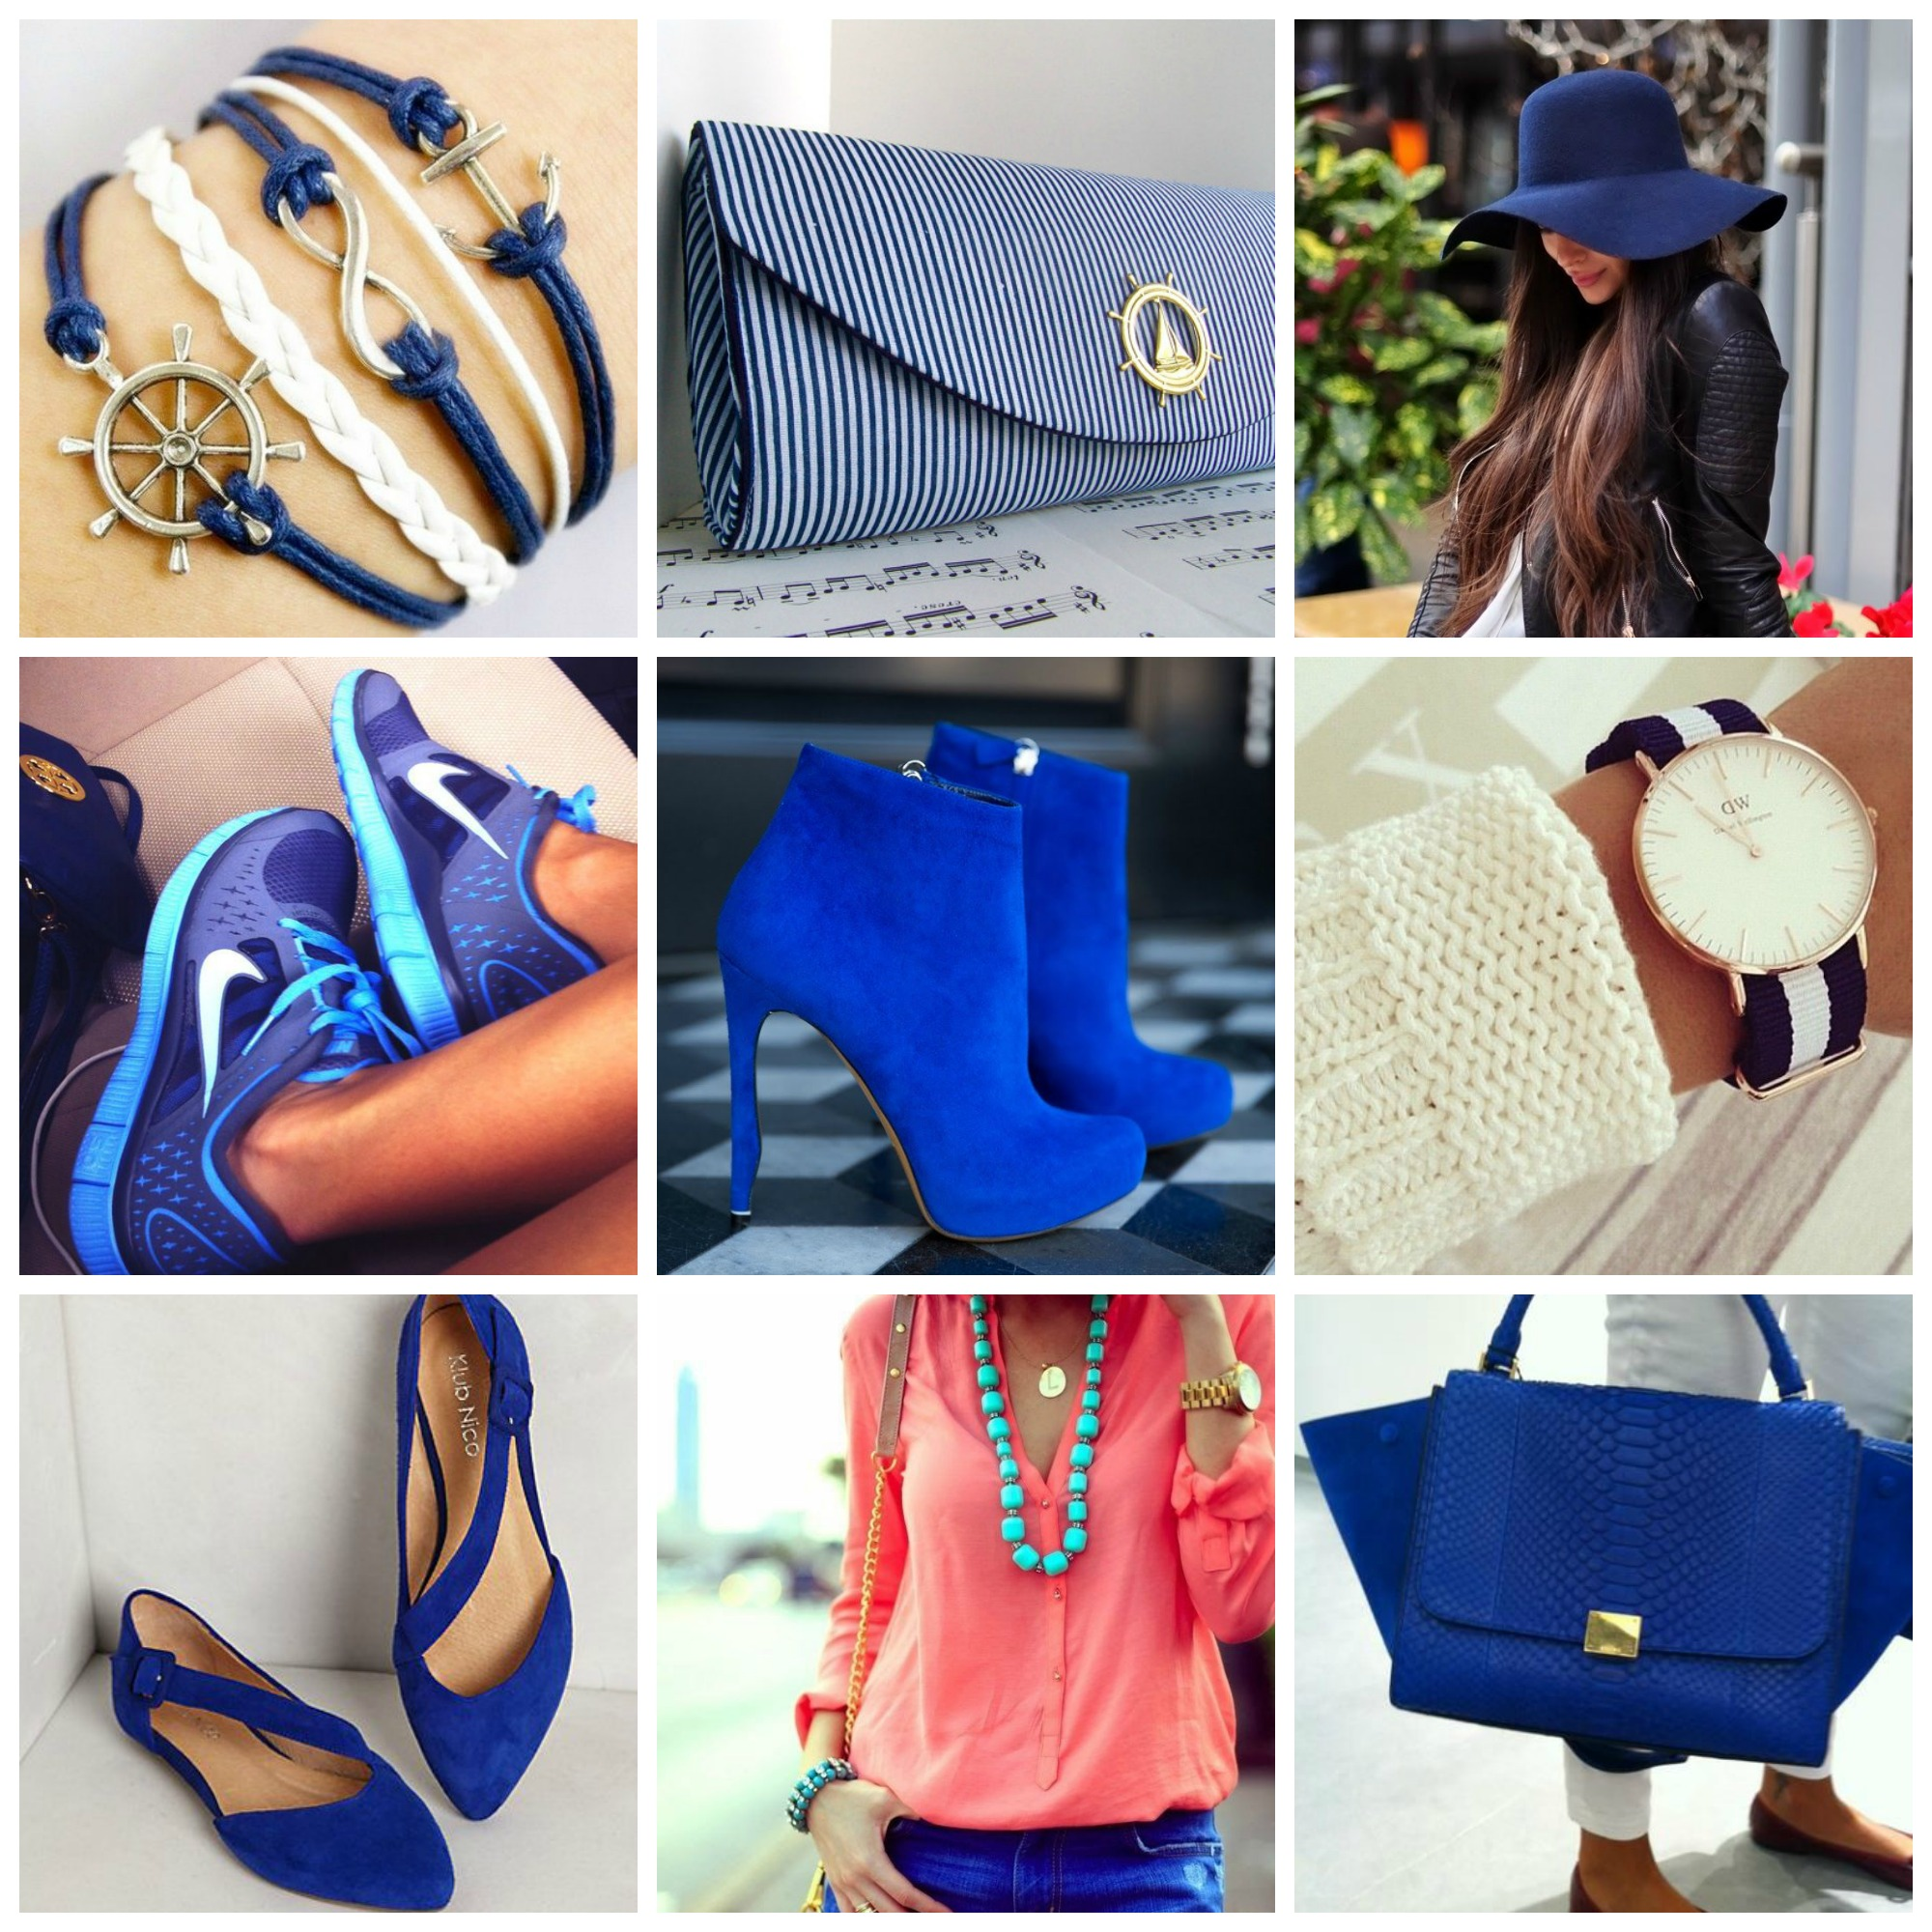 picmonkey_collage_accessories.jpg